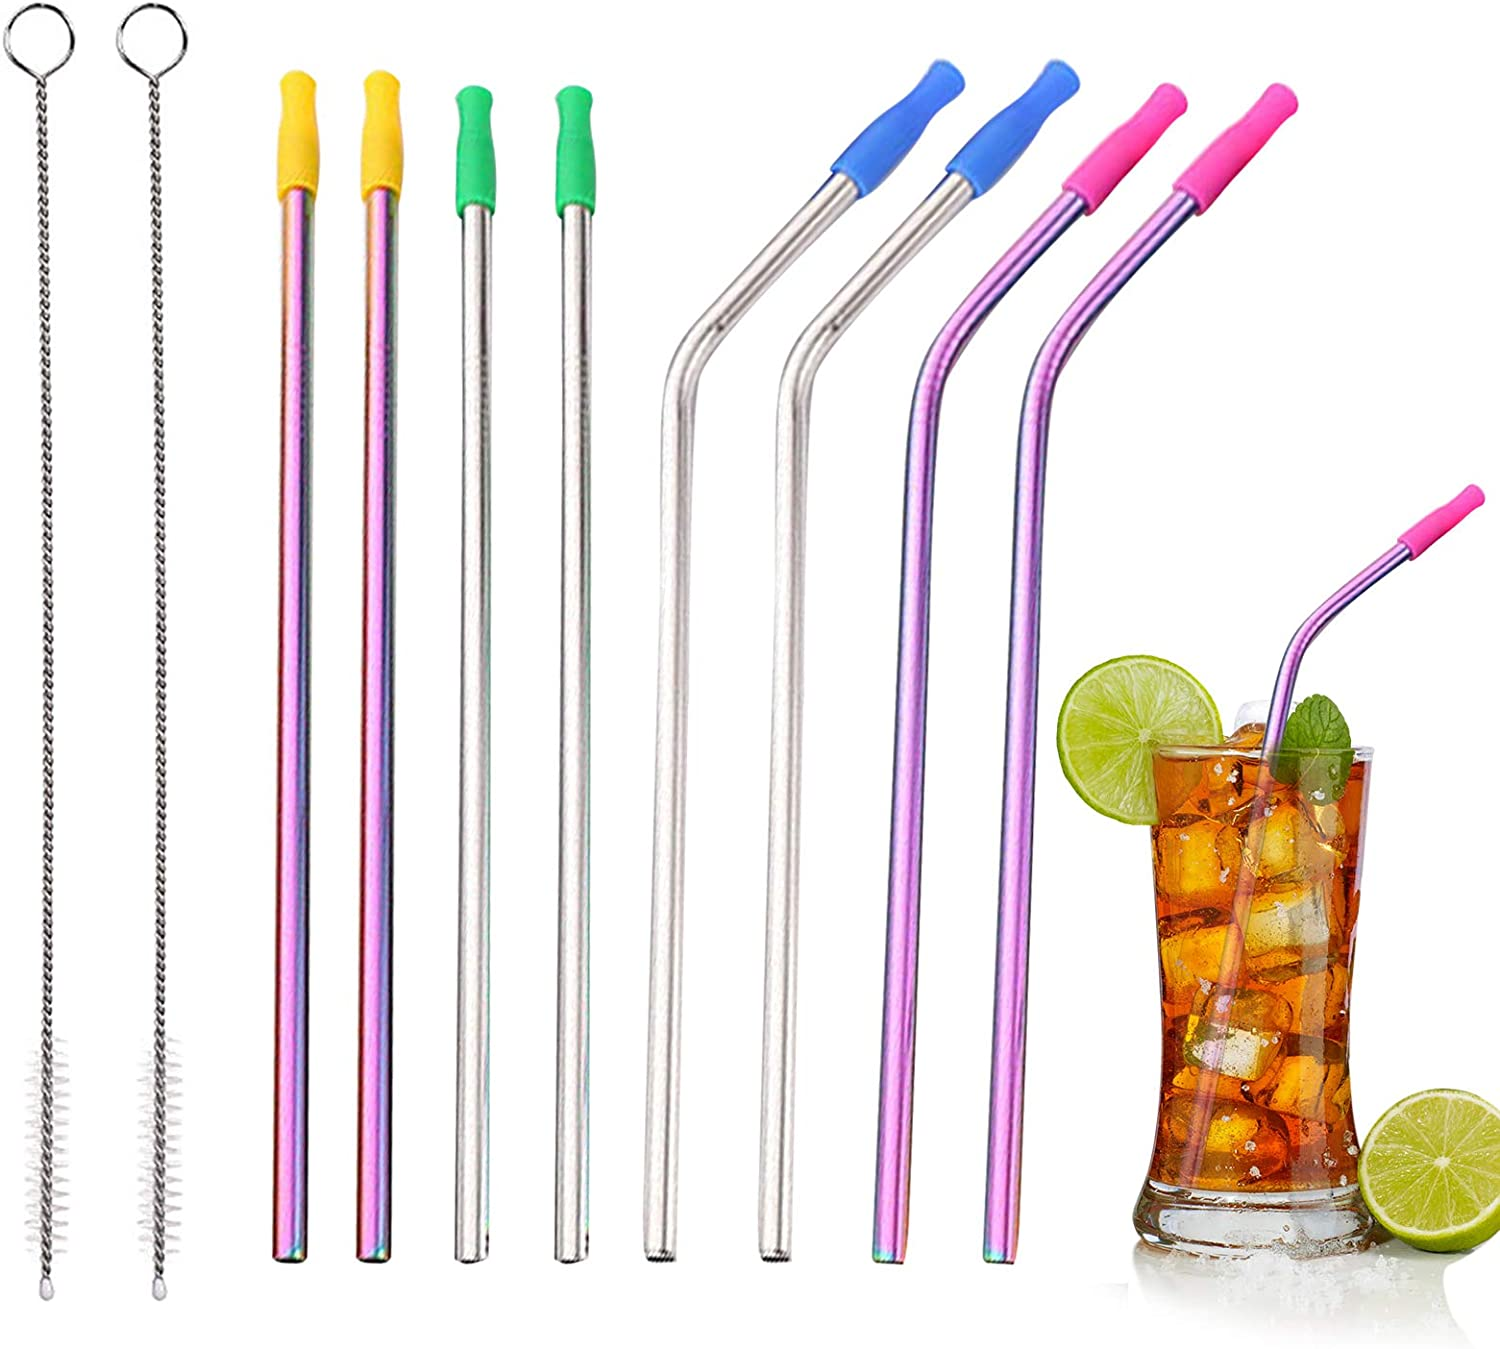 Metal Straws with Silicone Tips Stainless Steel Smoothie Straw Set Reusable Drinking Straws with Straw Cleaner & Pouch for 20 OZ Tumblers Mother's Day Gift for Women